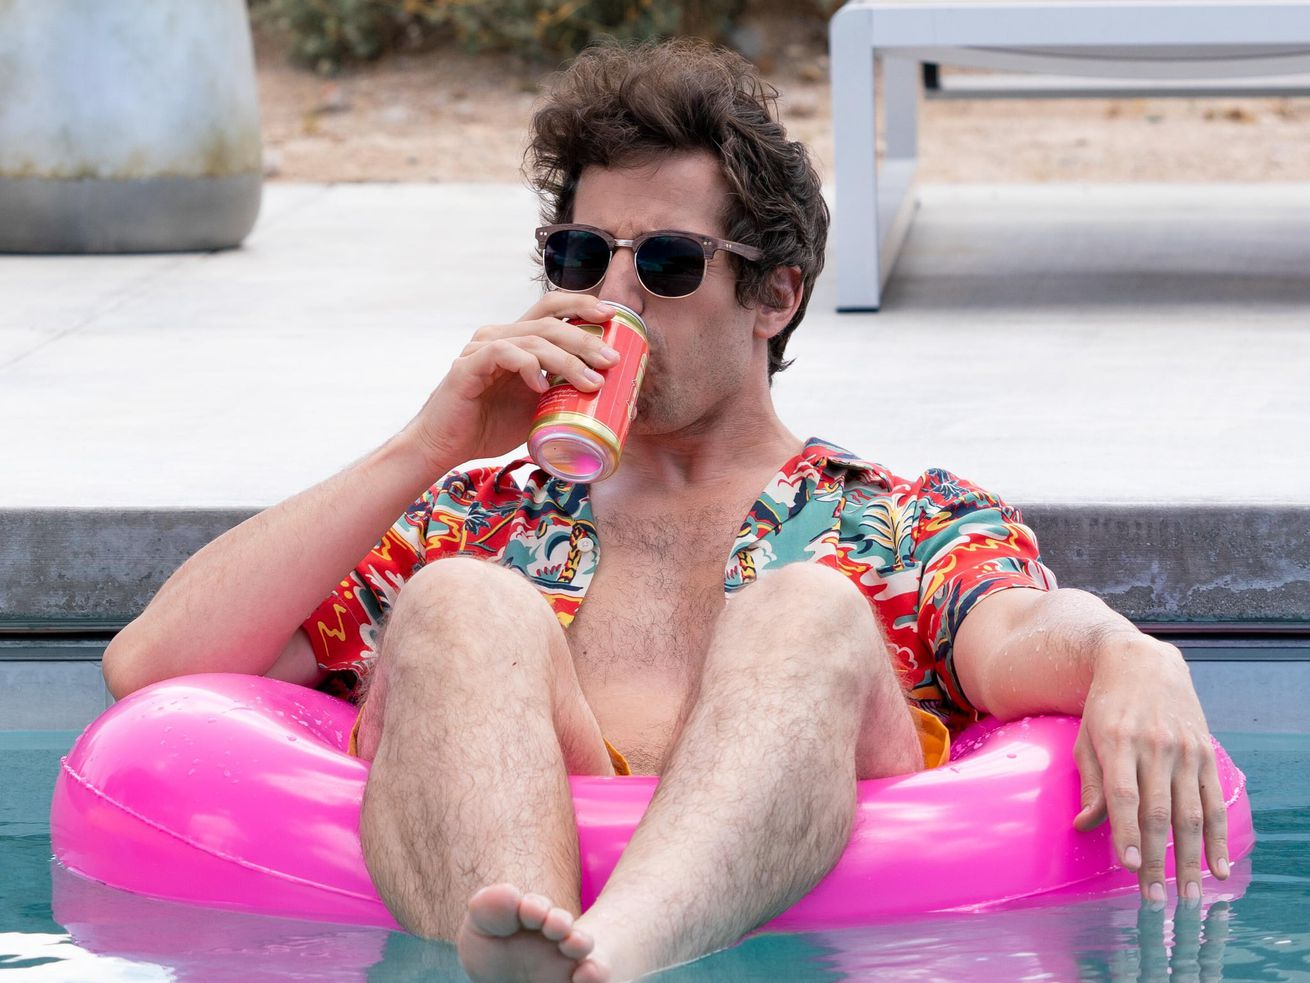 A man wearing sunglasses and a Hawaiian shirt floats in a pool drinking beer.